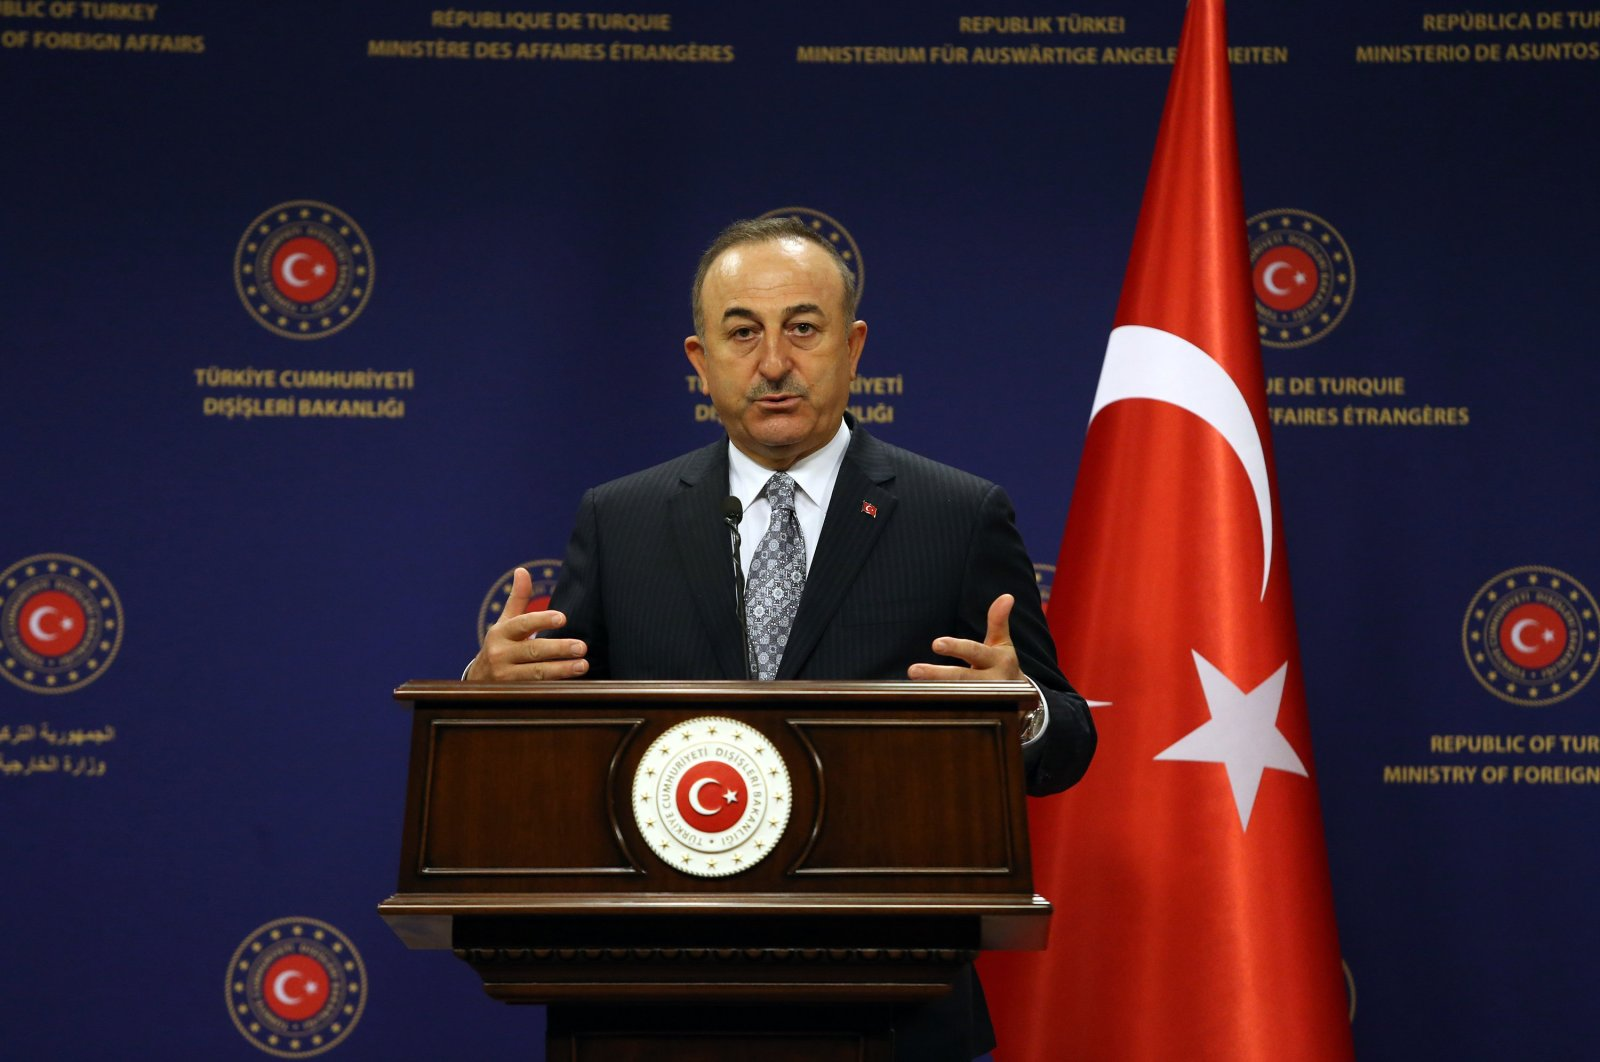 Foreign Minister Mevlüt Çavuşoğlu speaks at a news conference at the Foreign Ministry's headquarters in the capital Ankara, Turkey, Dec. 16, 2020. (Sabah Photo)